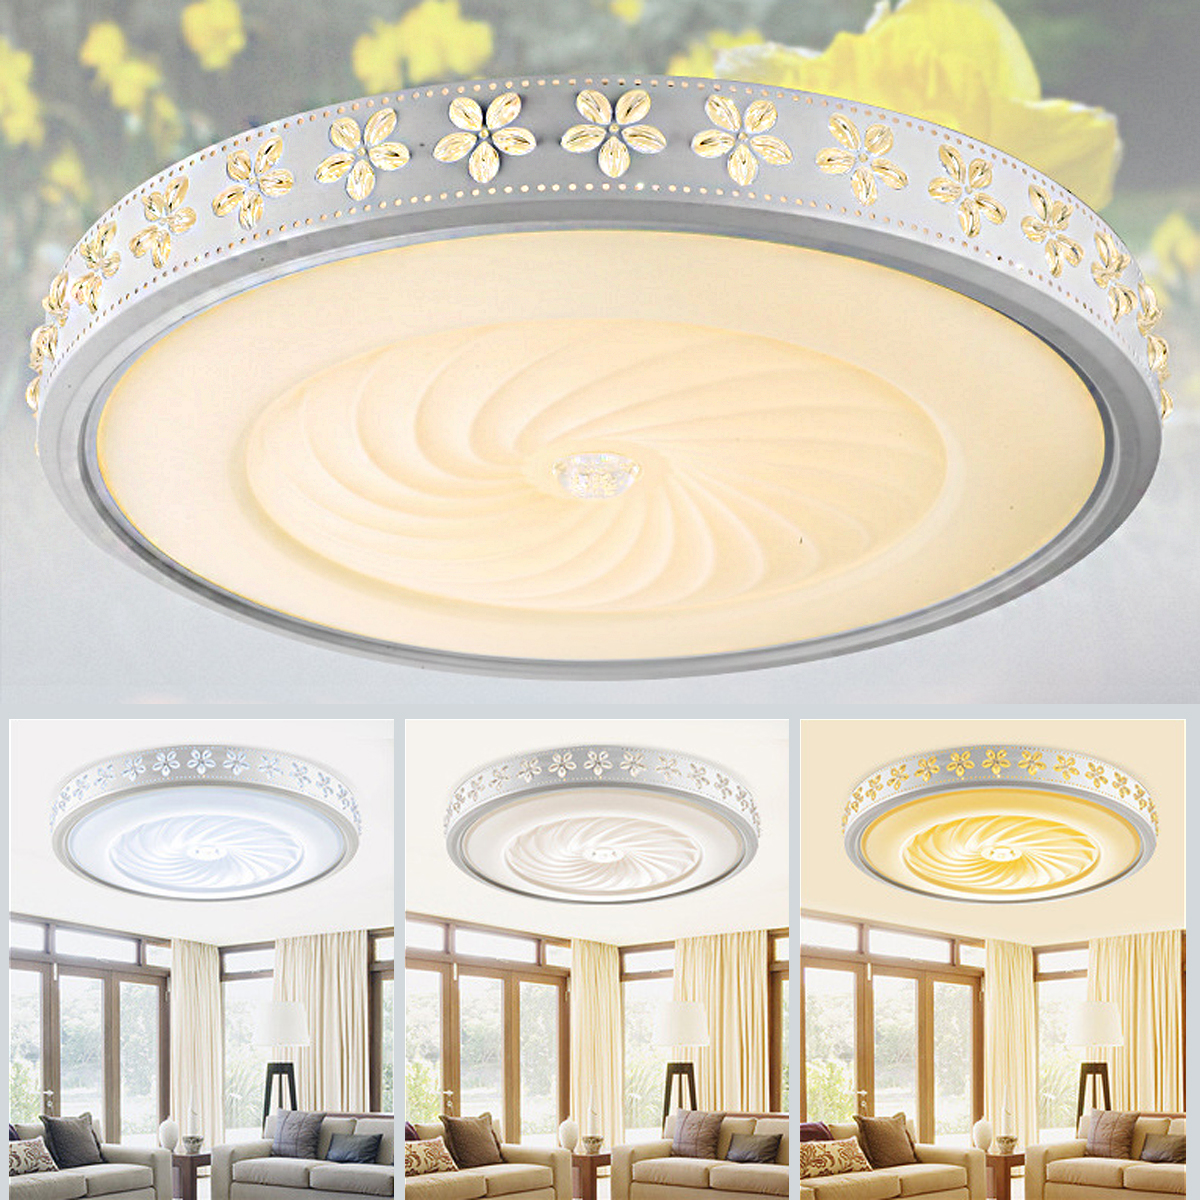 24W Acrylic LED Ceiling Light Dimmable With Remote Control Modern Trichromatic Lamp Living Room Bedroom Firture Lighting Bulbs round led ceiling light white modern acrylic ceiling lamp dimmable with remote control for kids bedroom lighting fixtures